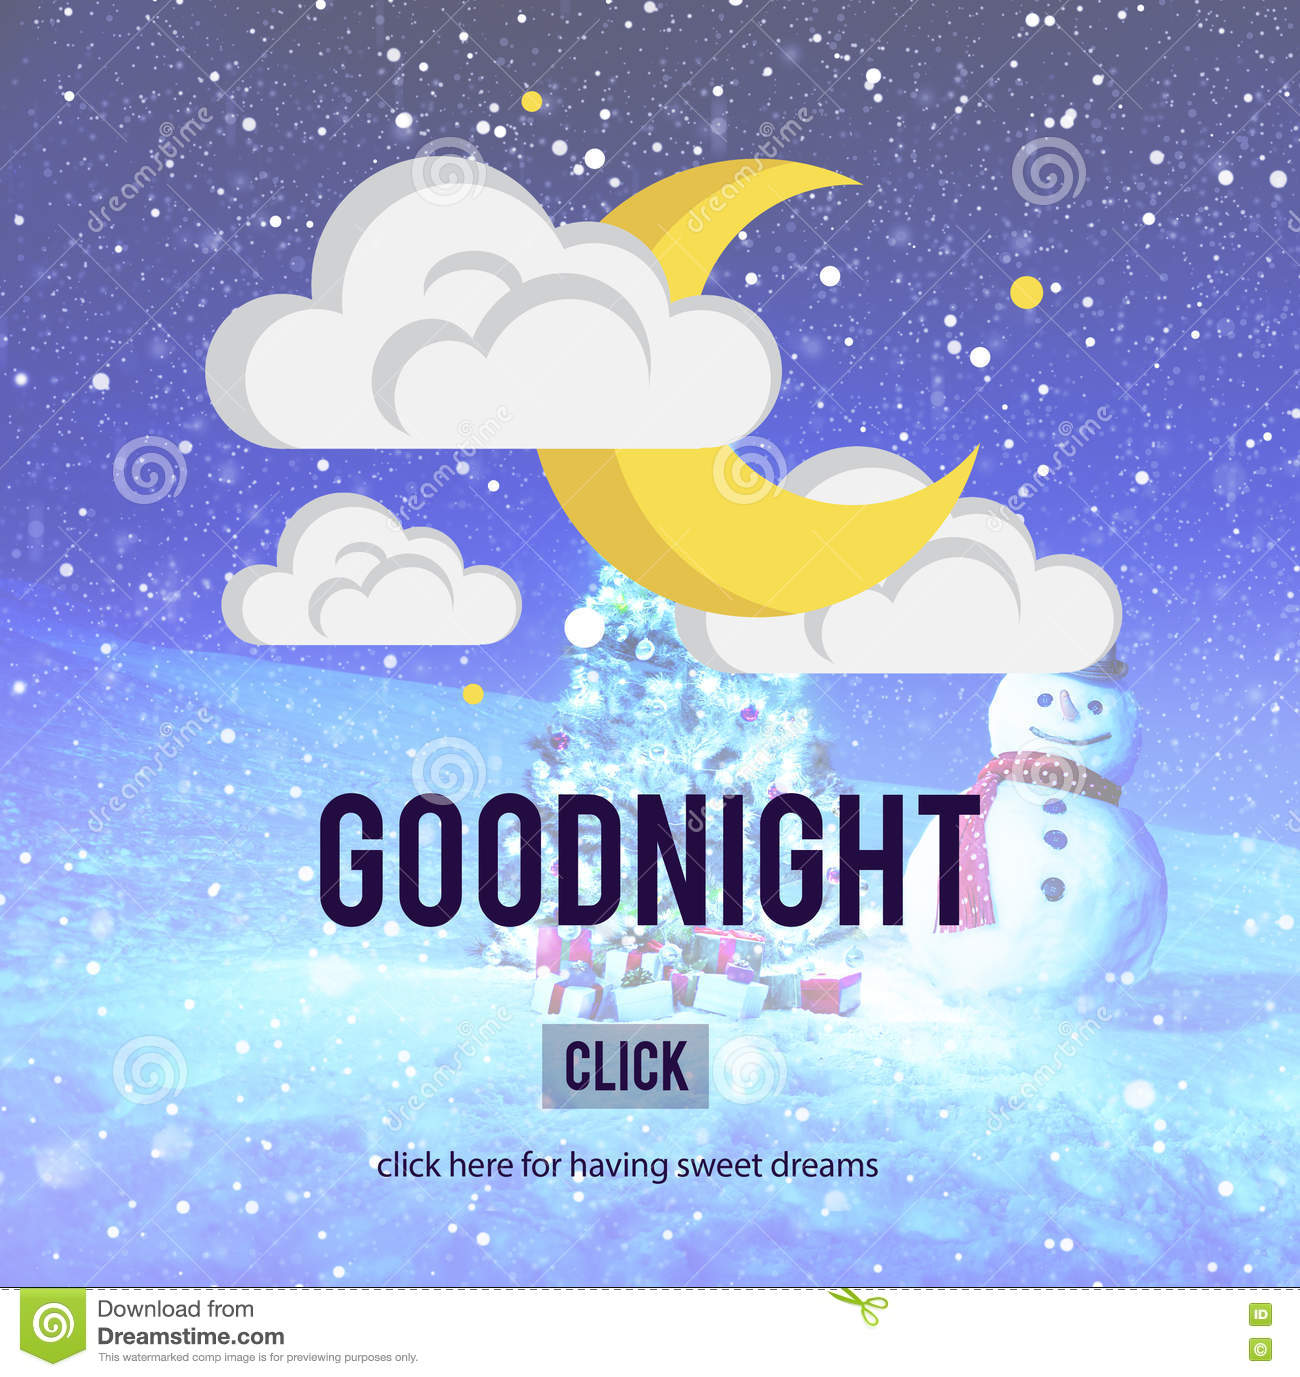 Goodnight Sweet Dreams Happiness Sleep Relief Concept Stock